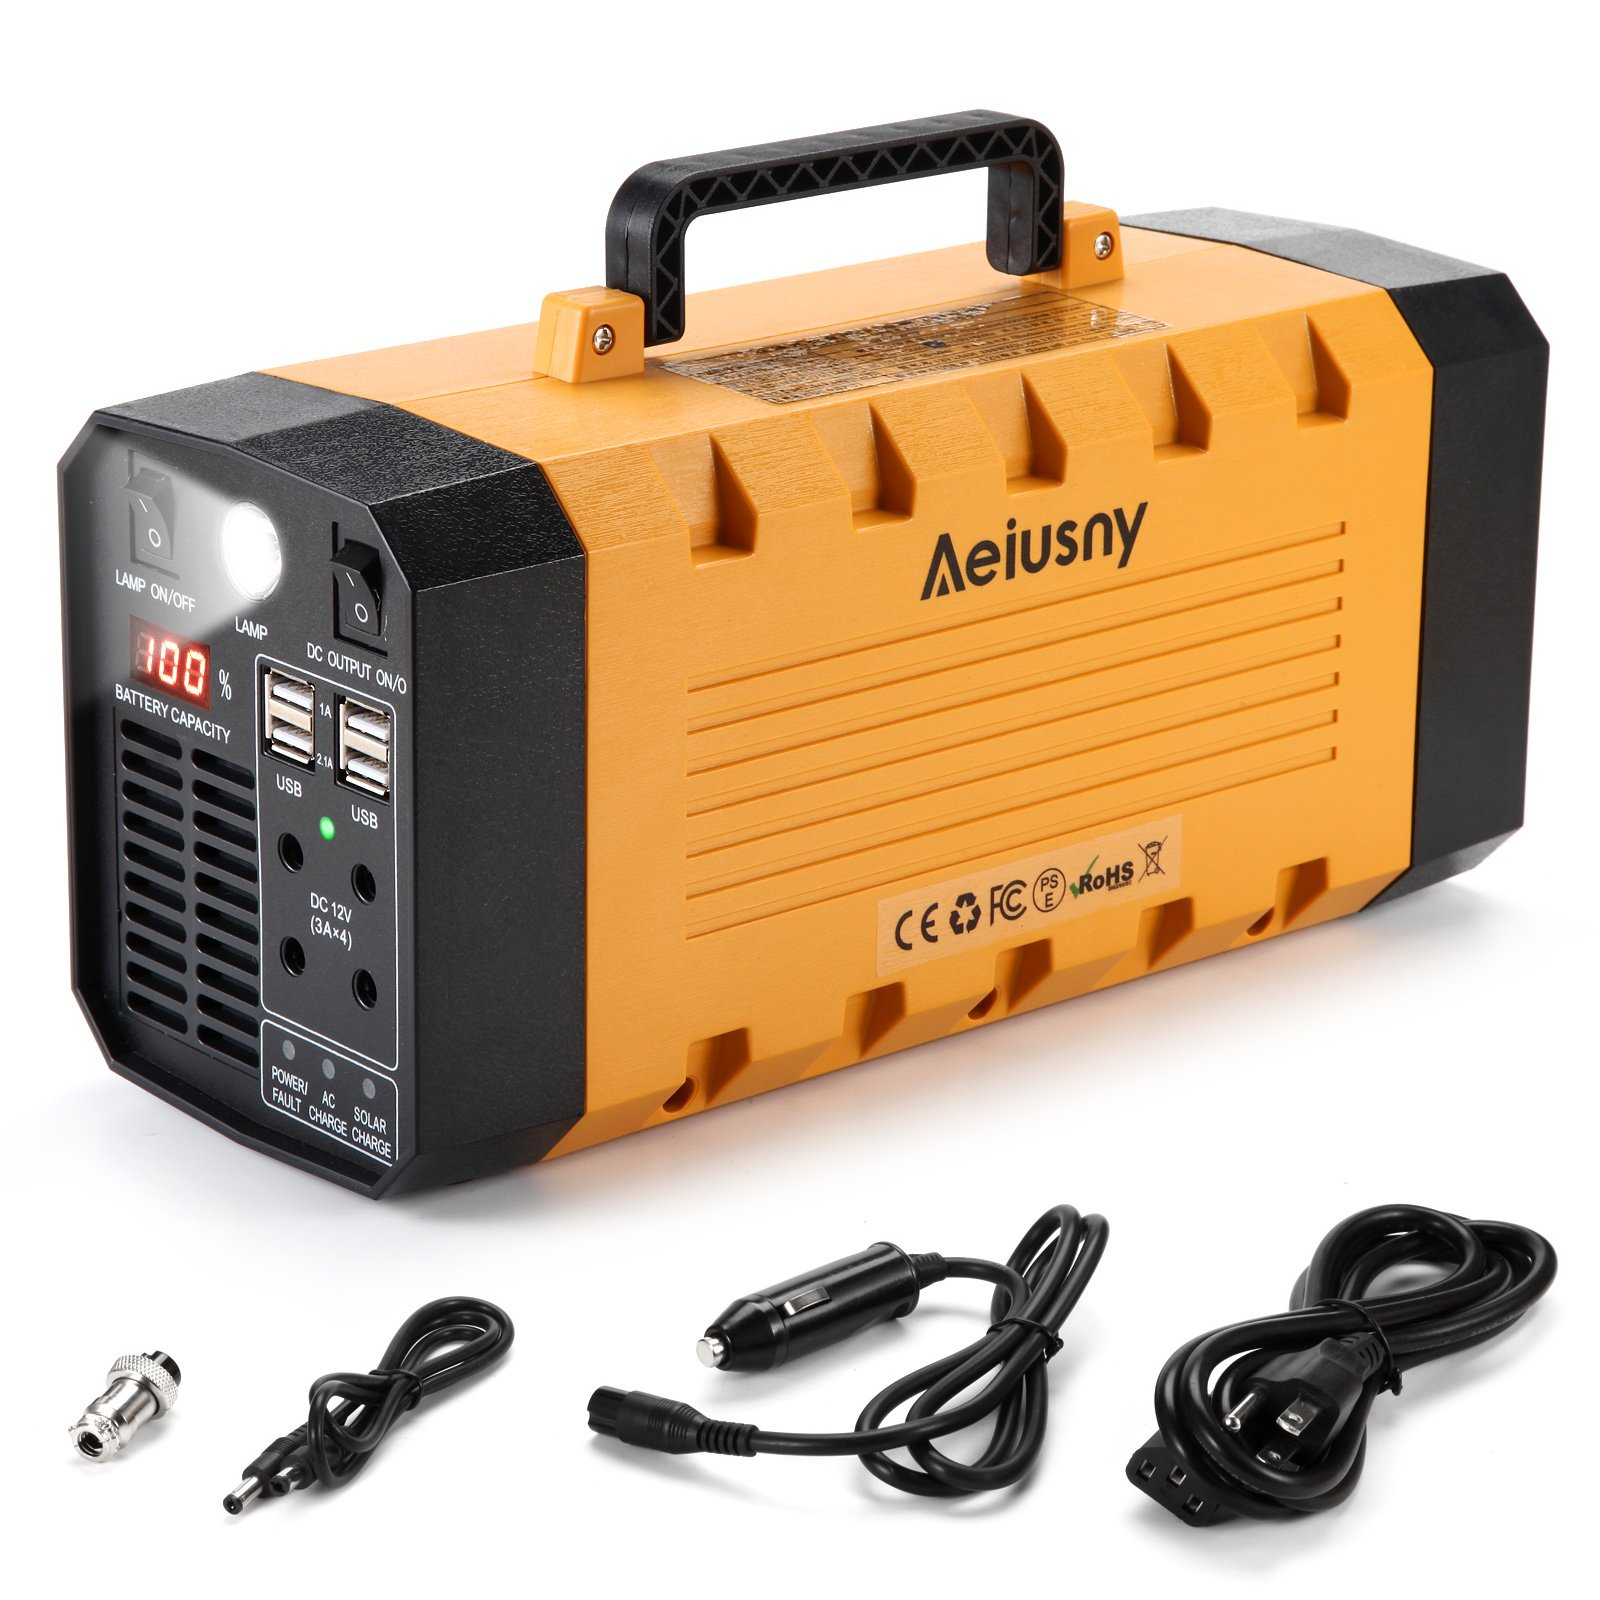 Aeiusny UPS Backup Battery 500W Portable Generator Parts, Uninterrupted Power Supply for CPAP Mask Home Camping Laptop Emergency Battery Backup 288Wh Charged by Solar/AC Outlet/Car for Outdoor&Indoor by Aeiusny (Image #1)